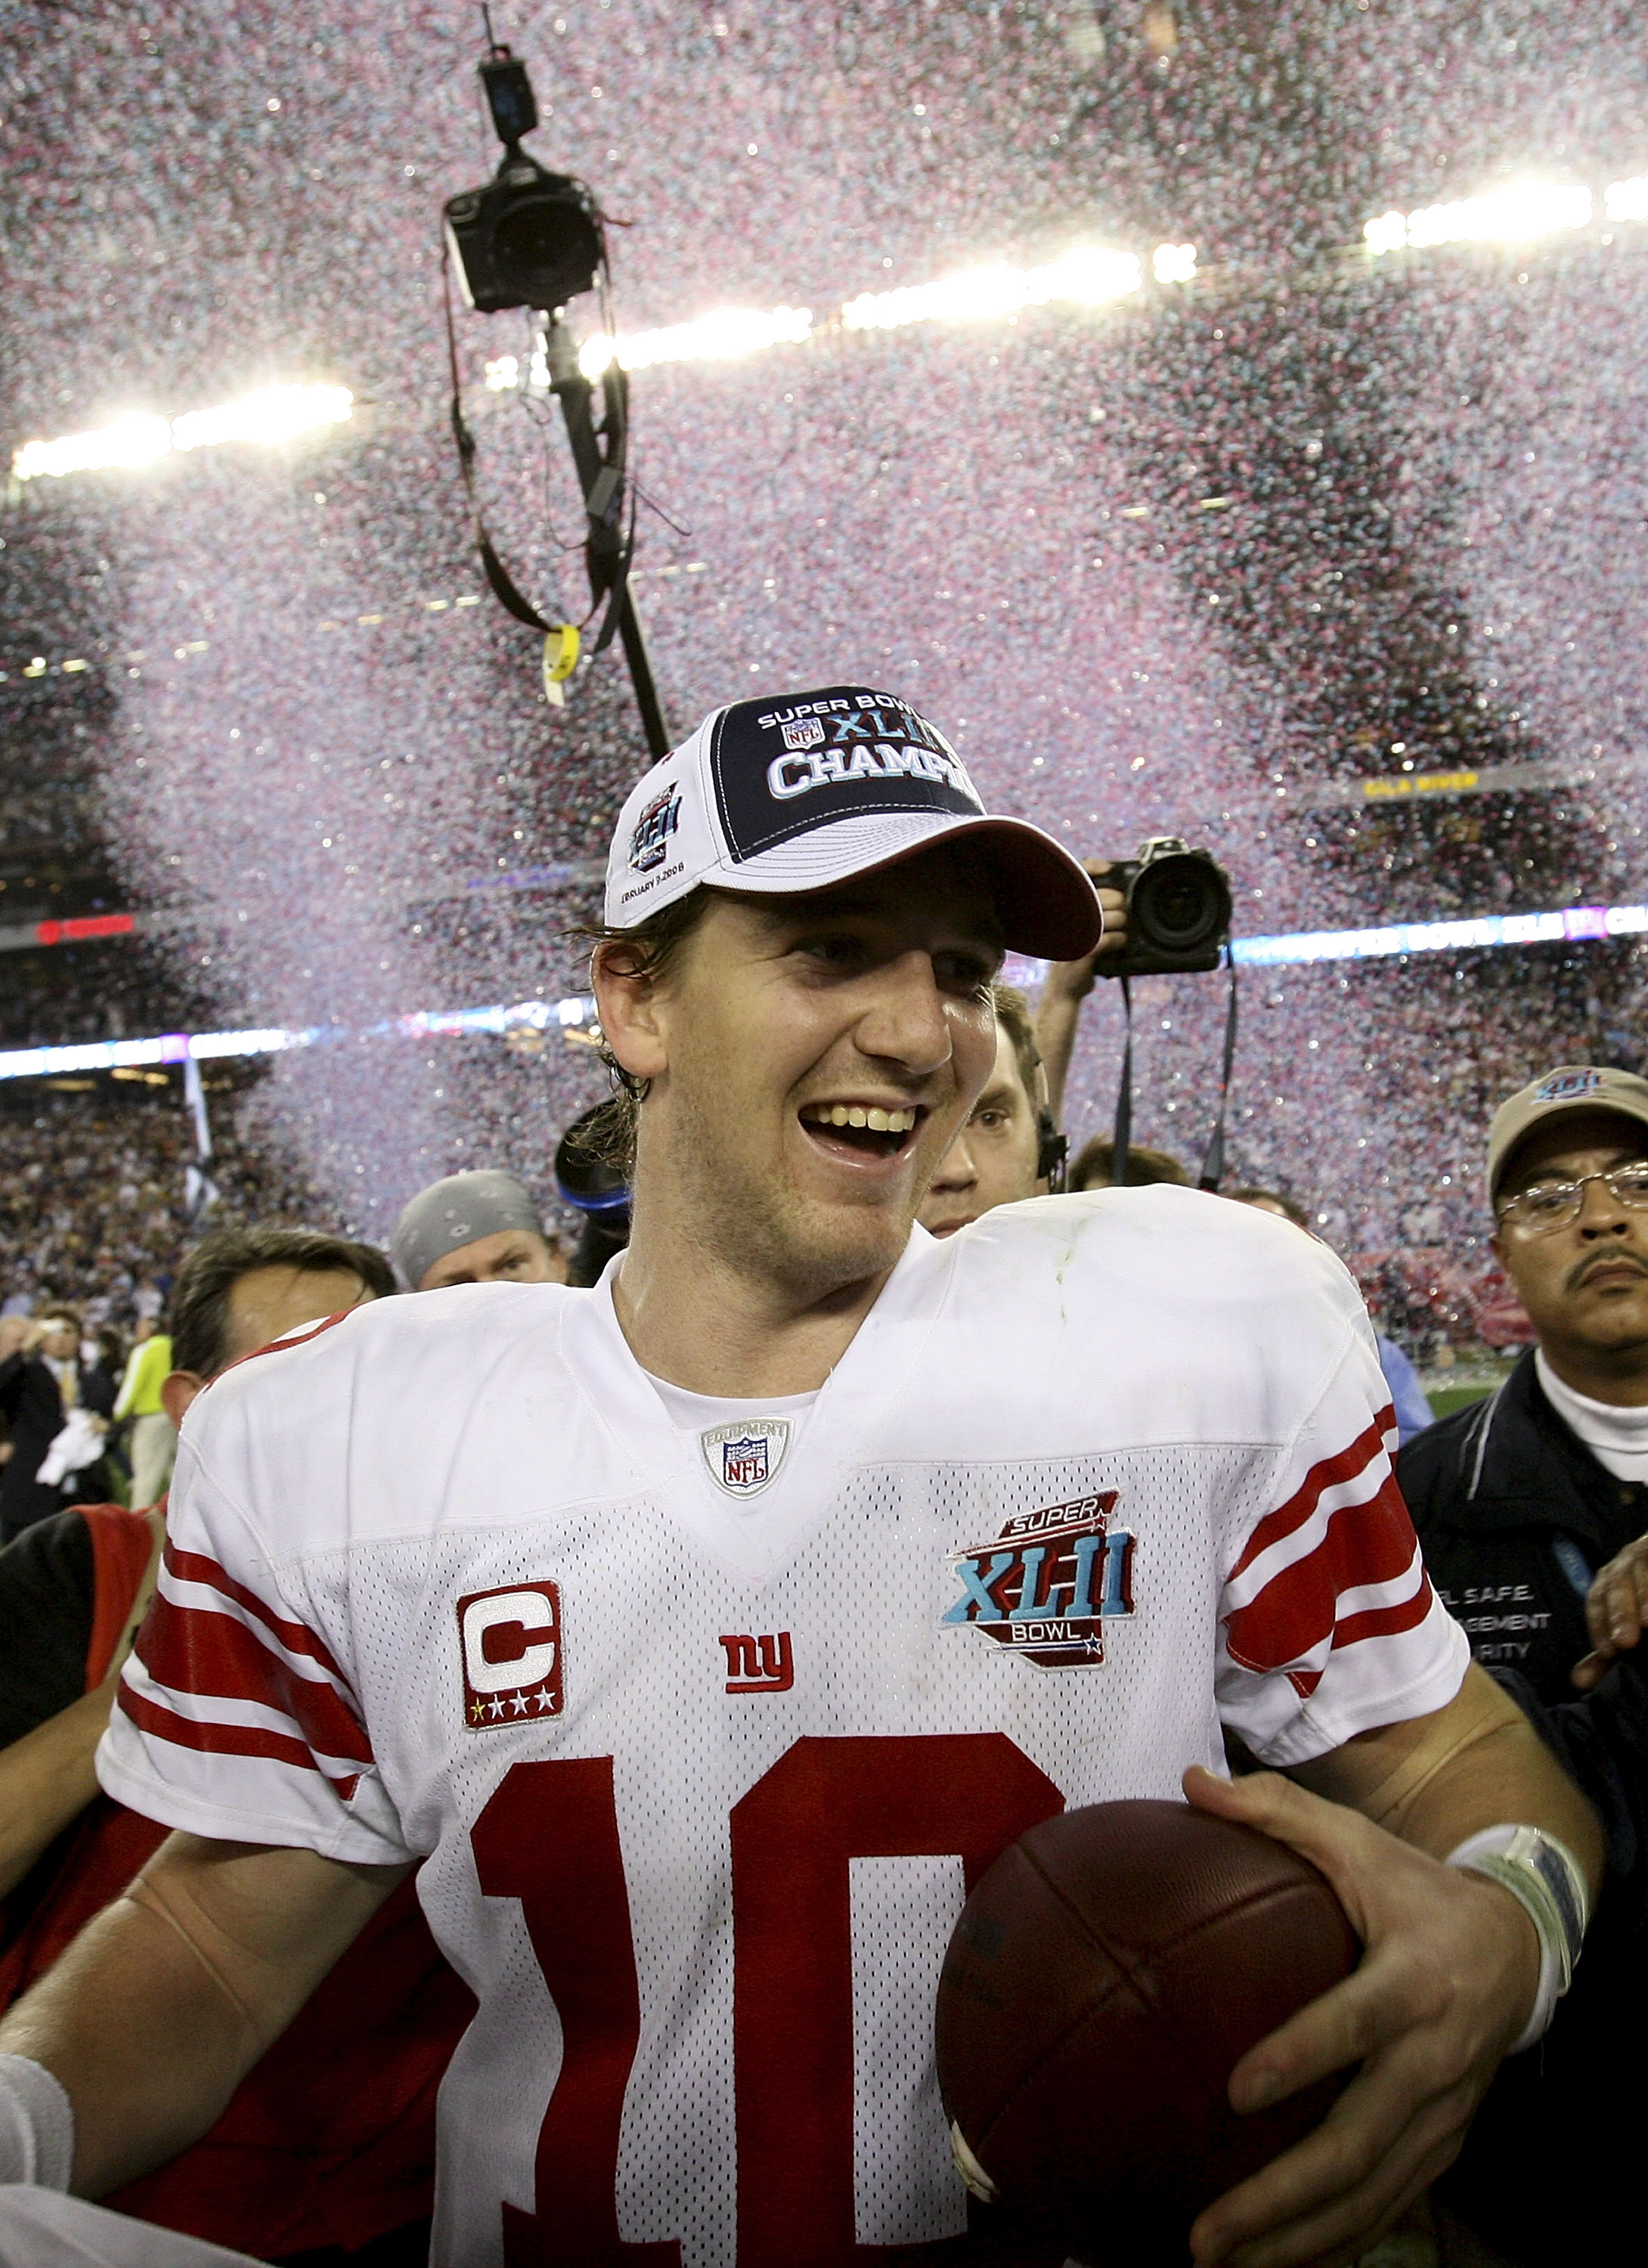 GLENDALE, AZ - FEBRUARY 03:  Quarterback Eli Manning #10 of the New York Giants walks off the field after the Giants defeated the New England Patriots 17-14 during Super Bowl XLII on February 3, 2008 at the University of Phoenix Stadium in Glendale, Arizo